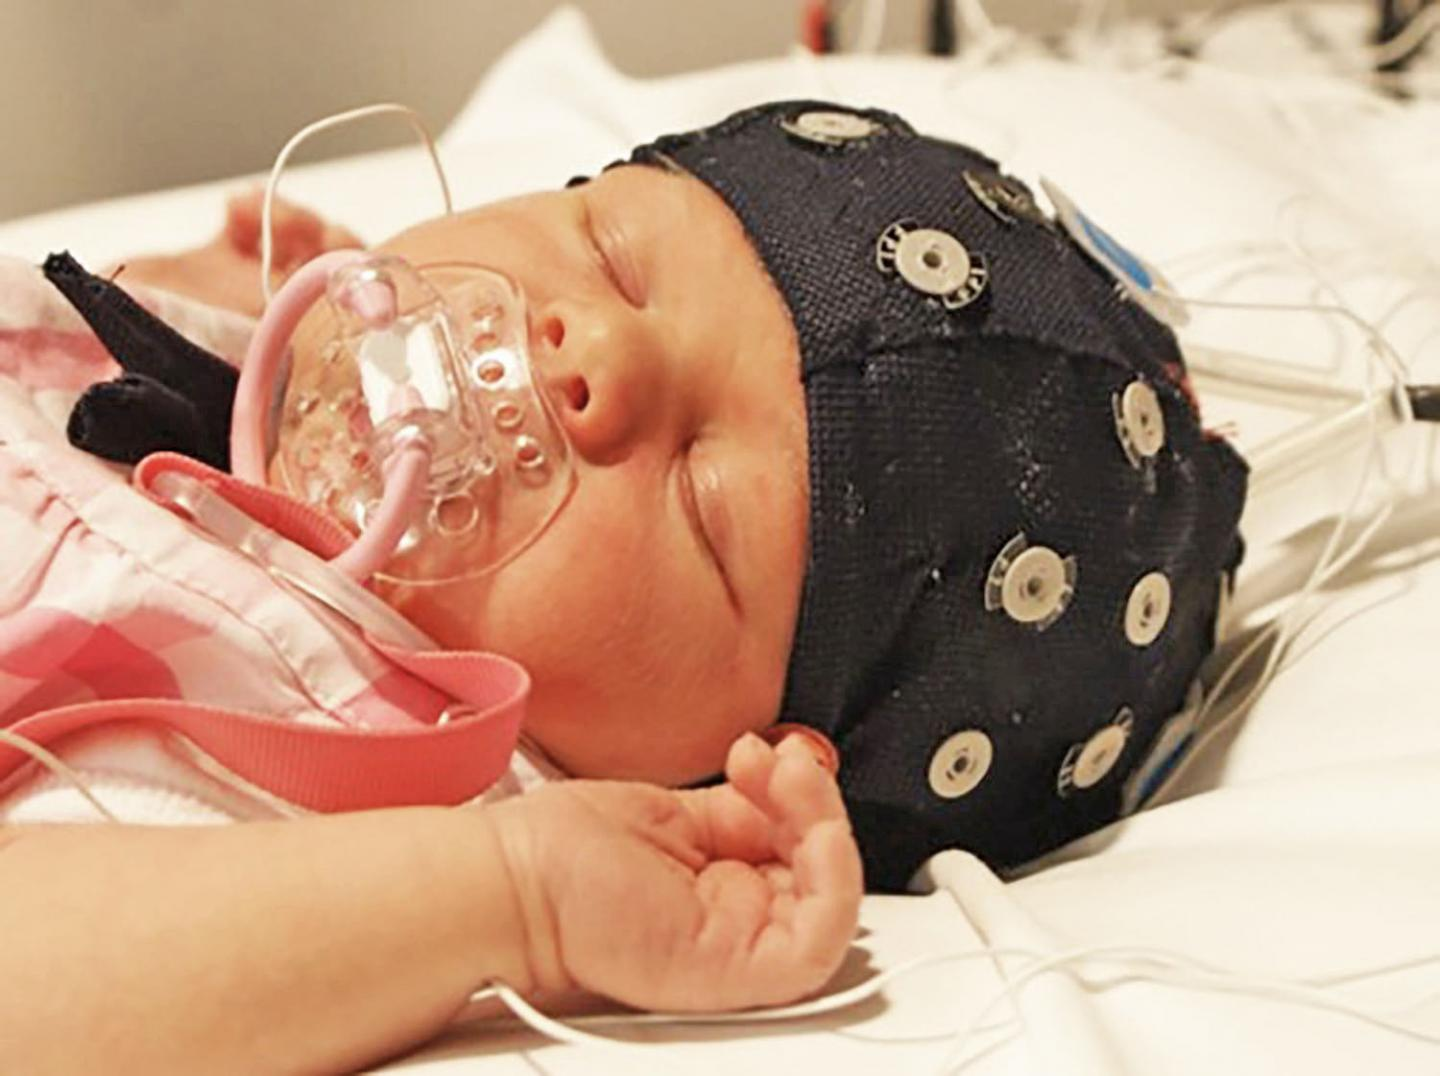 Machine Learning and Artificial Intelligence to Help Preterm Infants